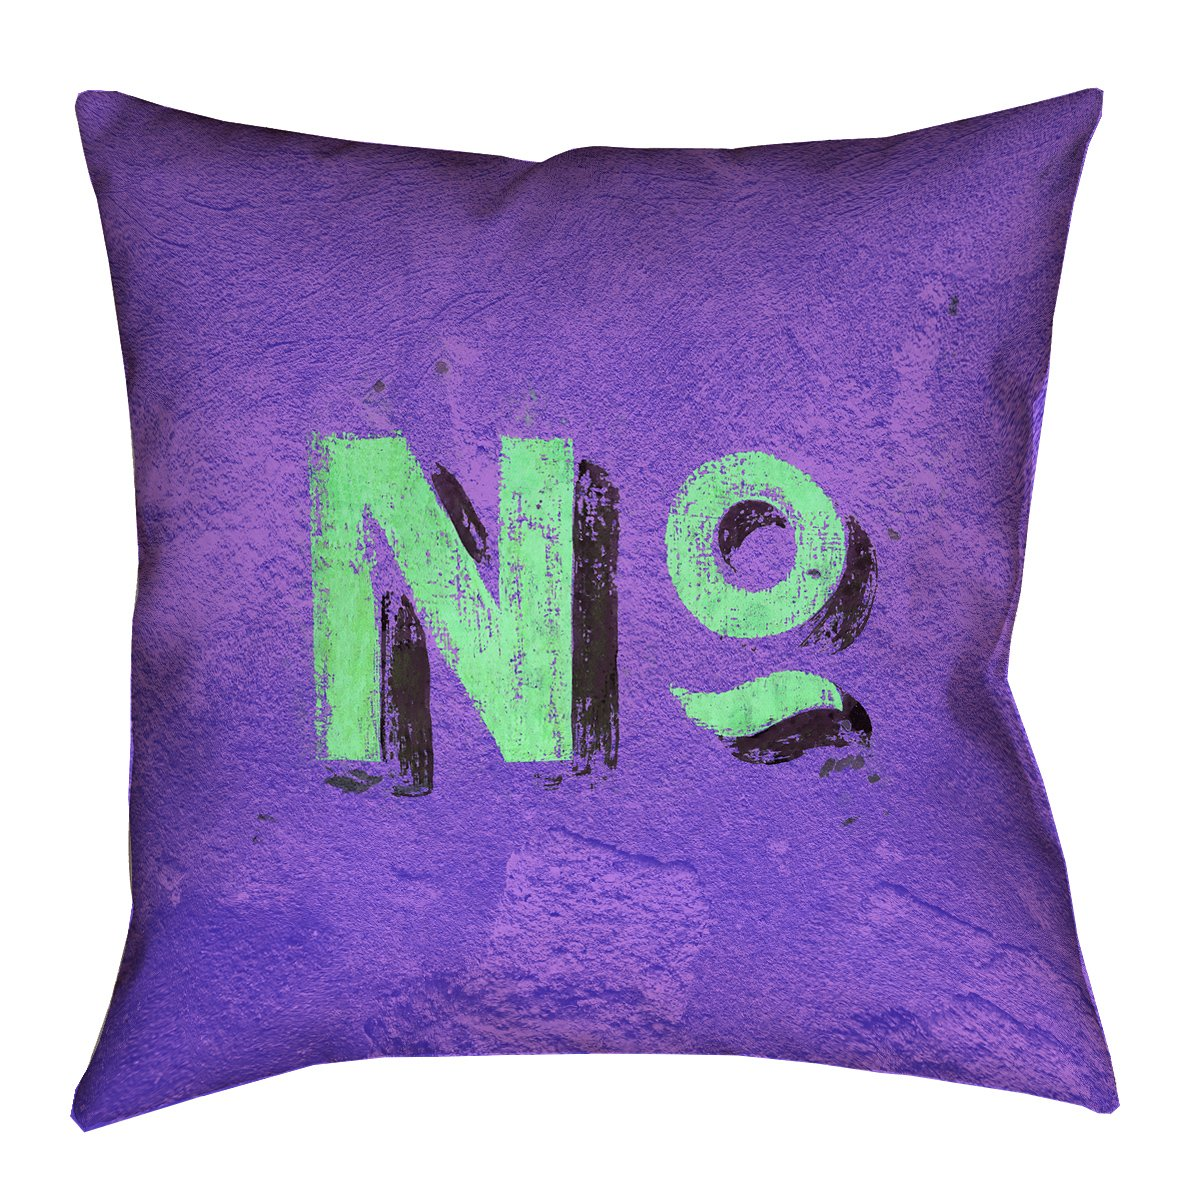 ArtVerse Katelyn Smith 20 x 20 Faux Suede Double Sided Print with Concealed Zipper /& Insert Purple /& Green Graphic Wall Pillow